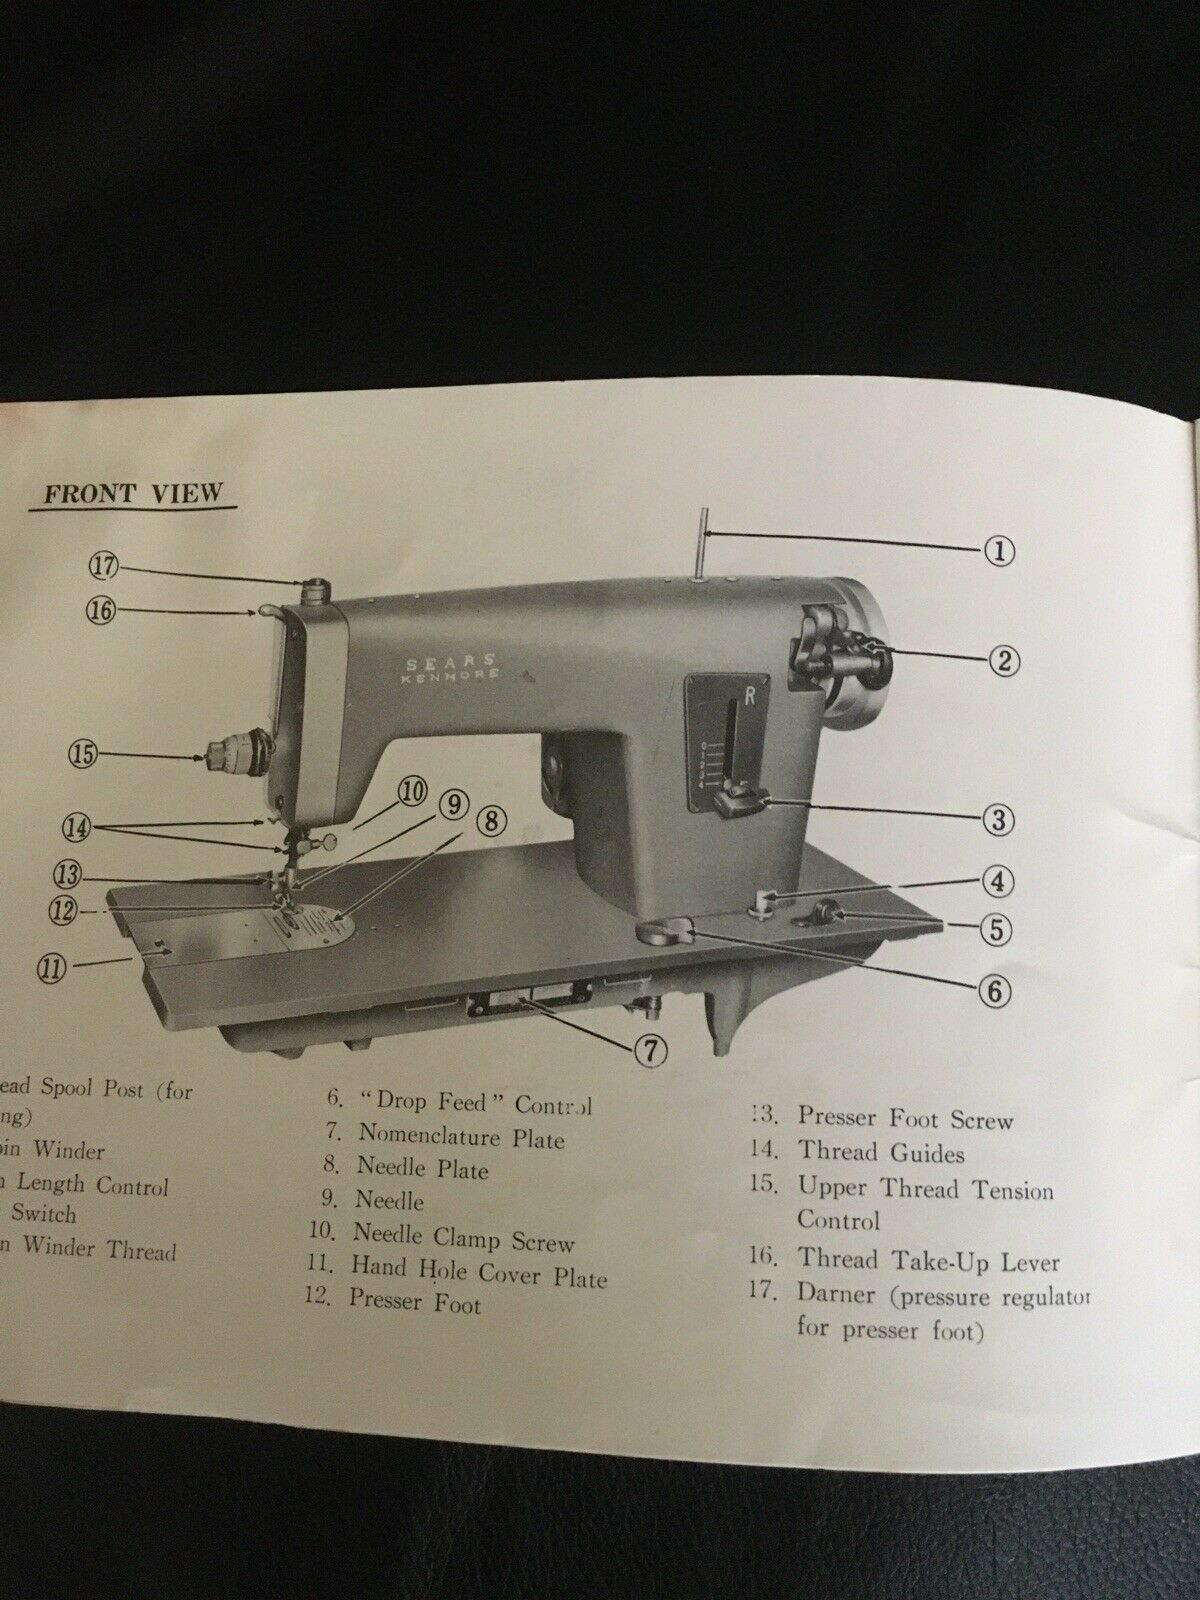 s l1600 - Vintage Original Sears Kenmore Sewing Machine Instruction Book For Model 1101